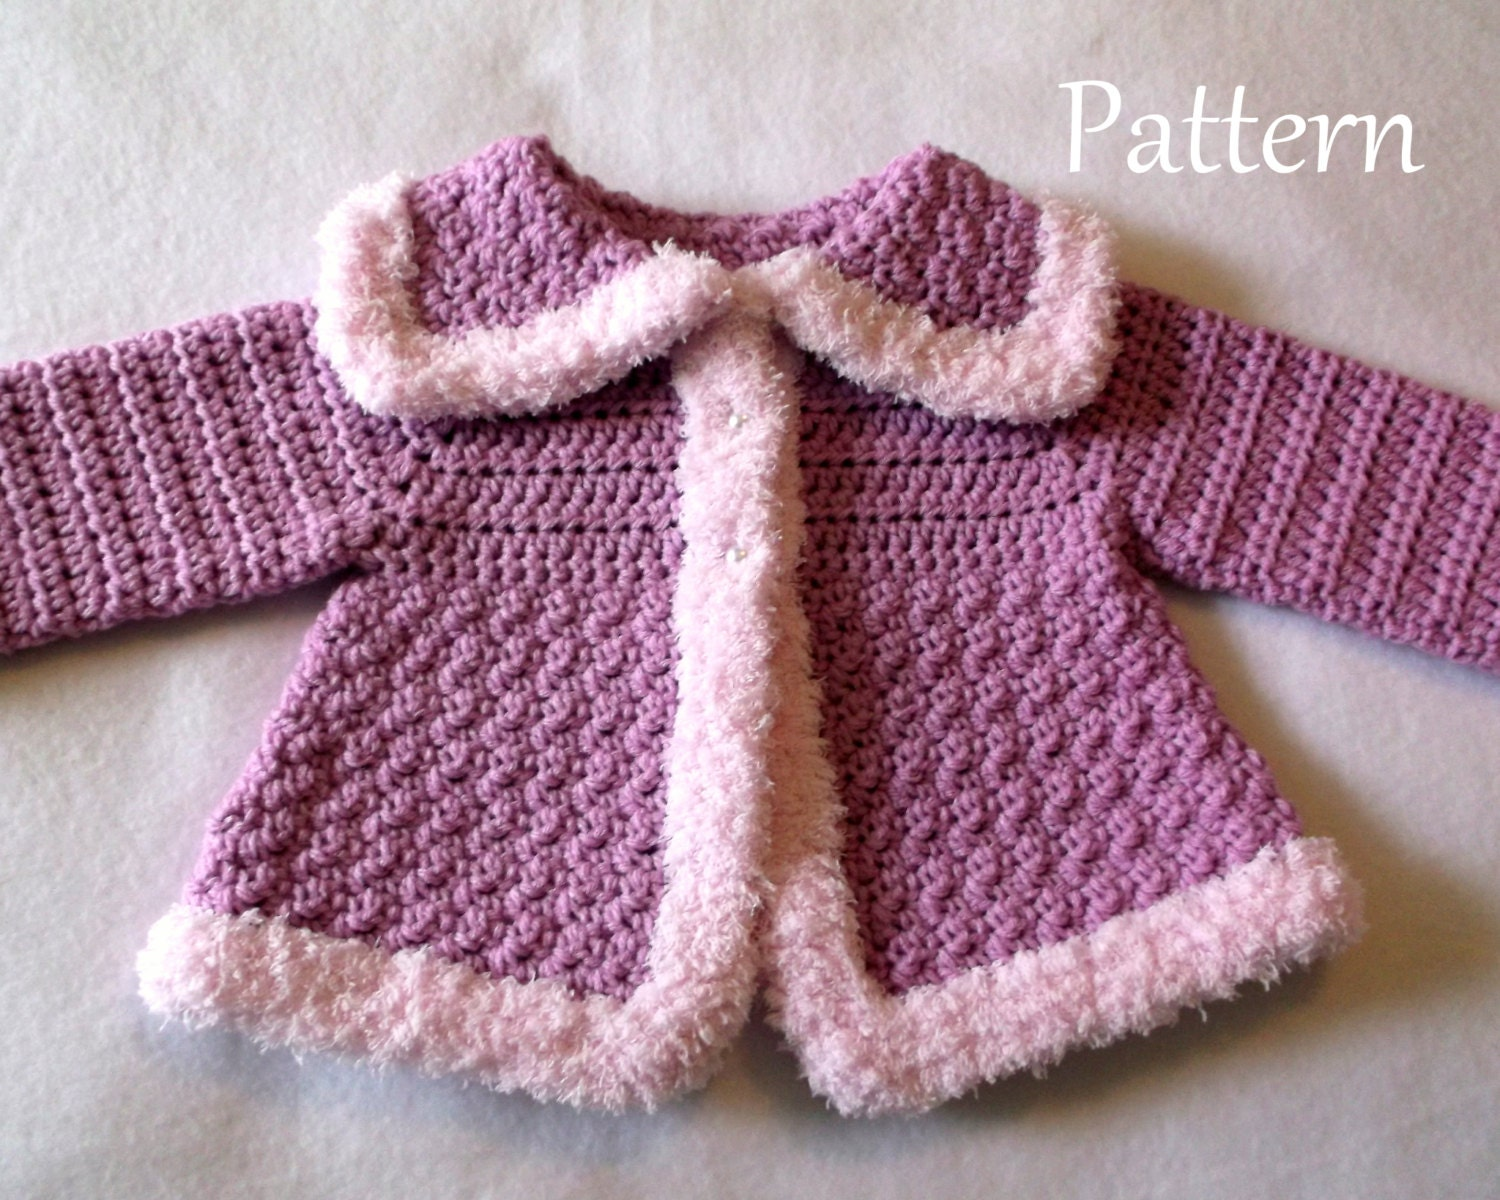 Crochet PATTERN The Charlie Baby Girls Sweater Pattern